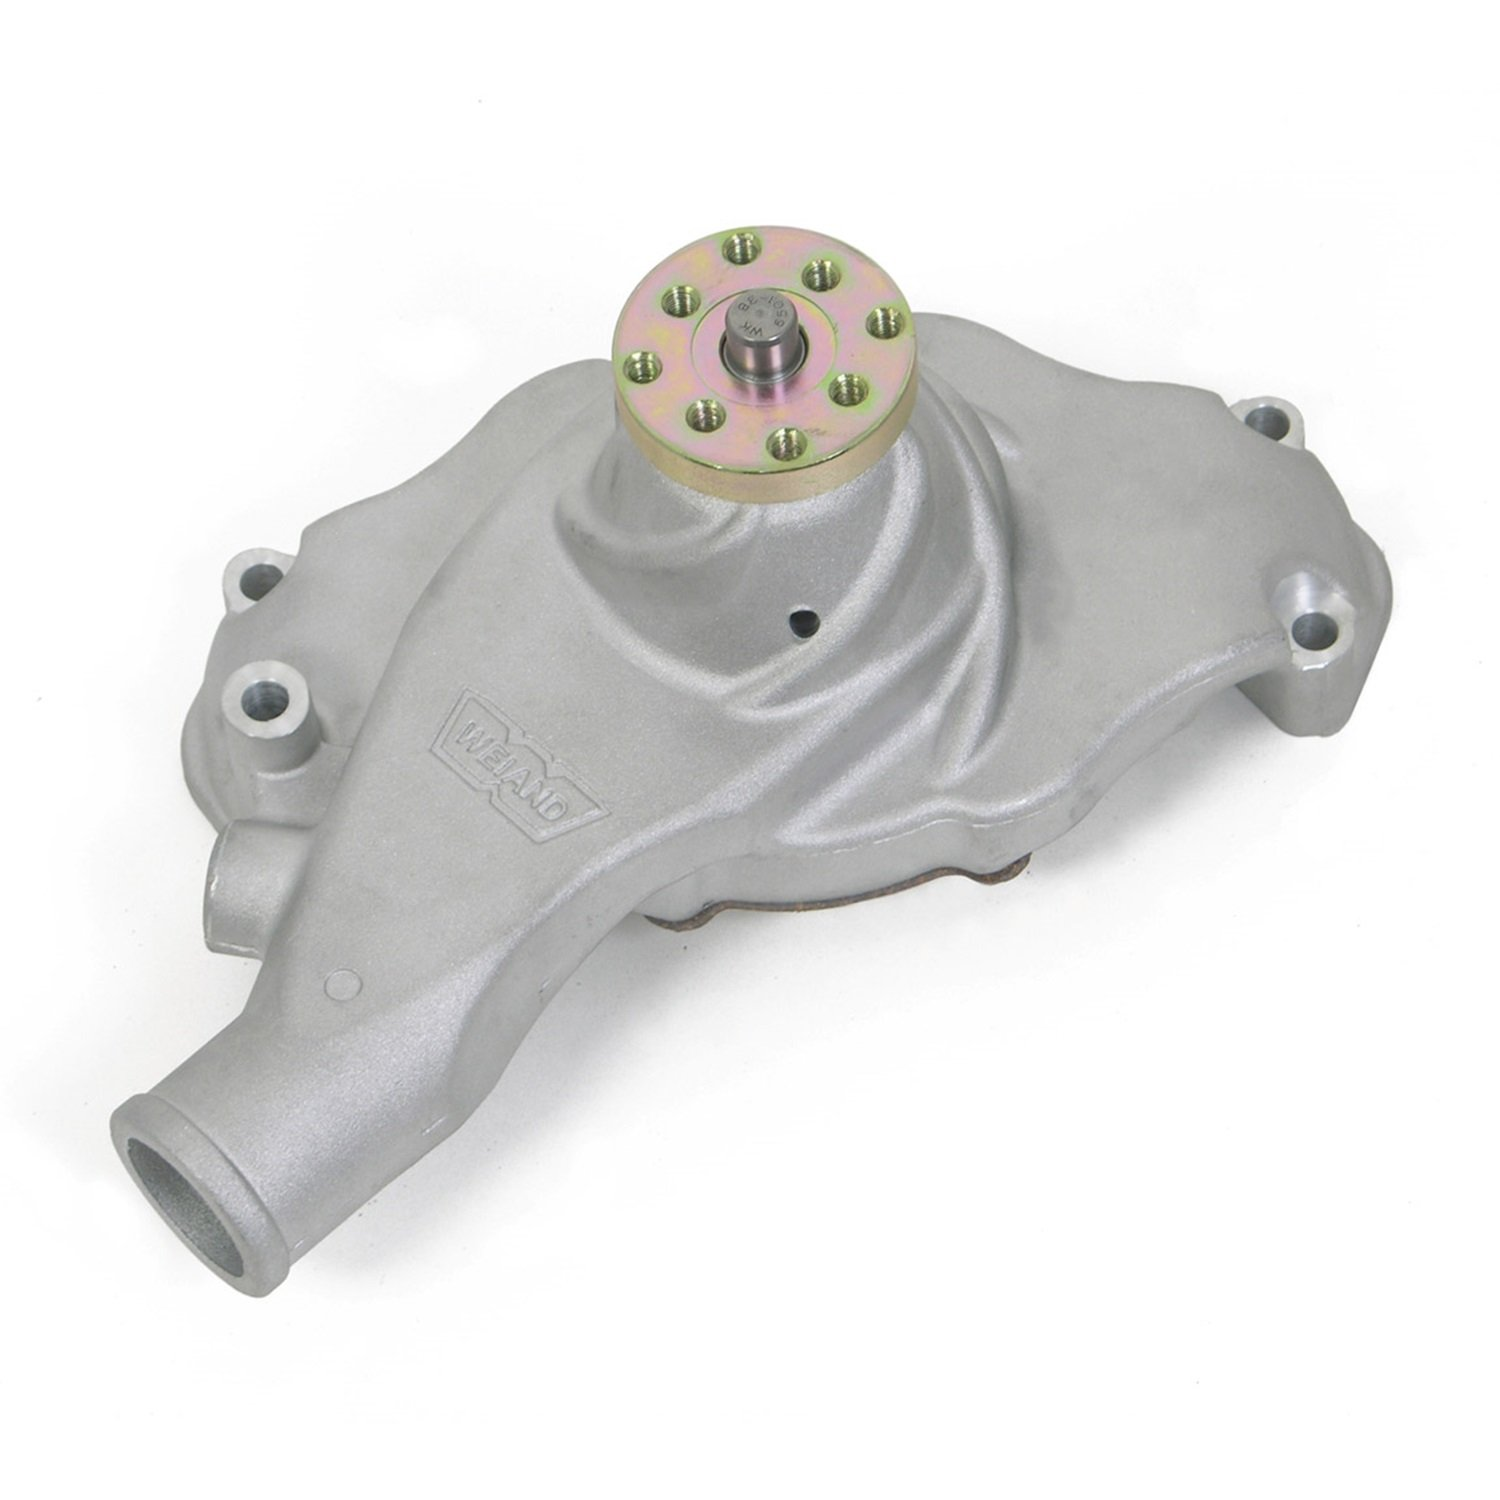 Weiand 9212 Action Plus Water Pump by Weiand